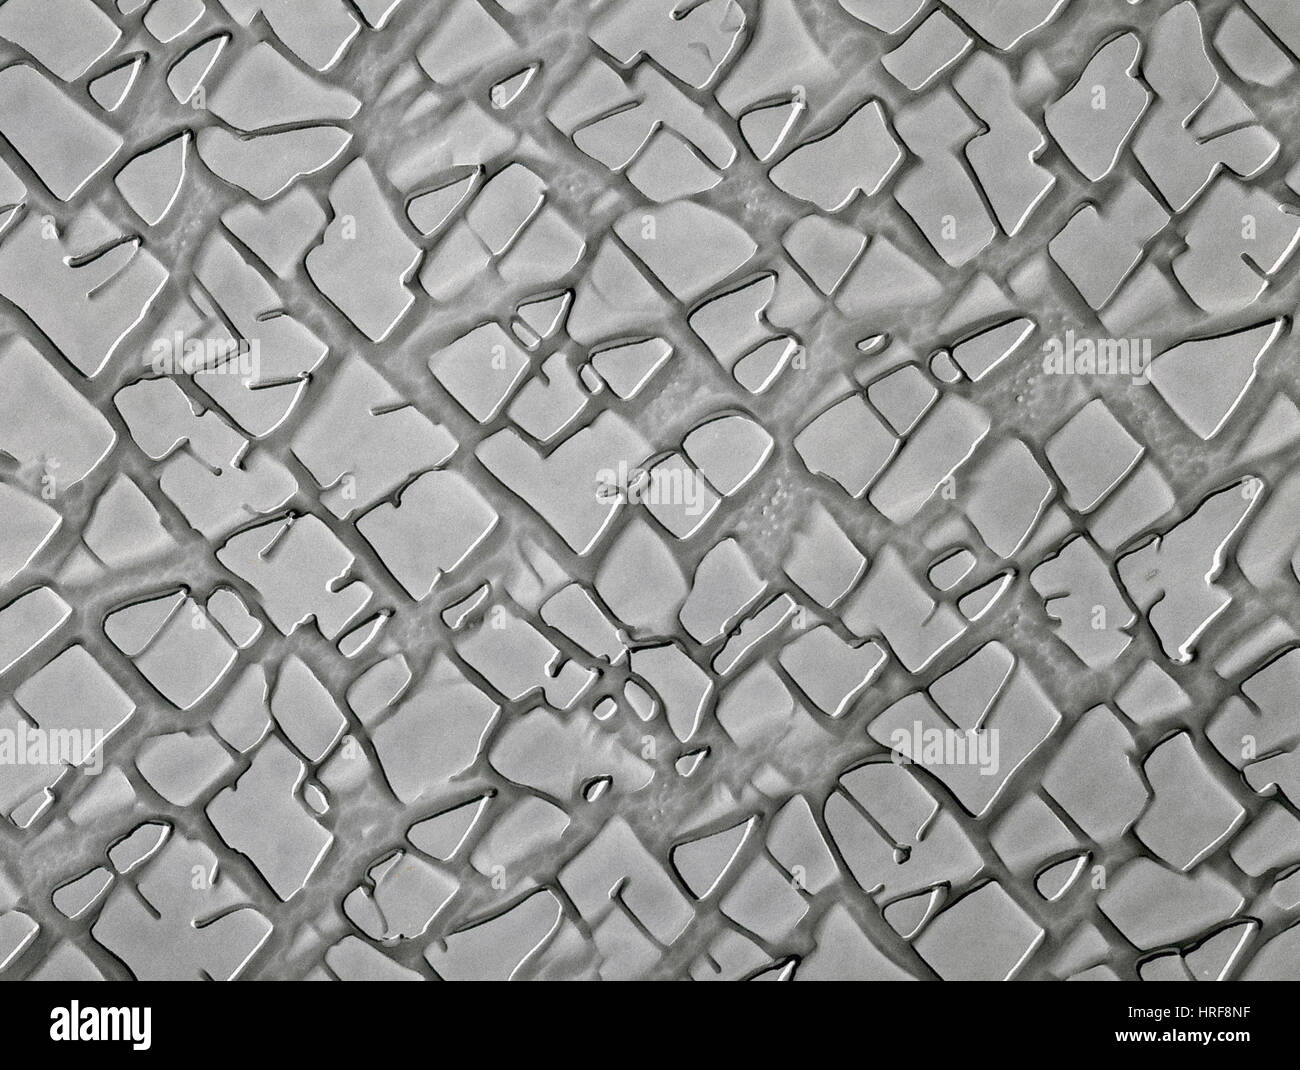 Nickel Alloy - Stock Image